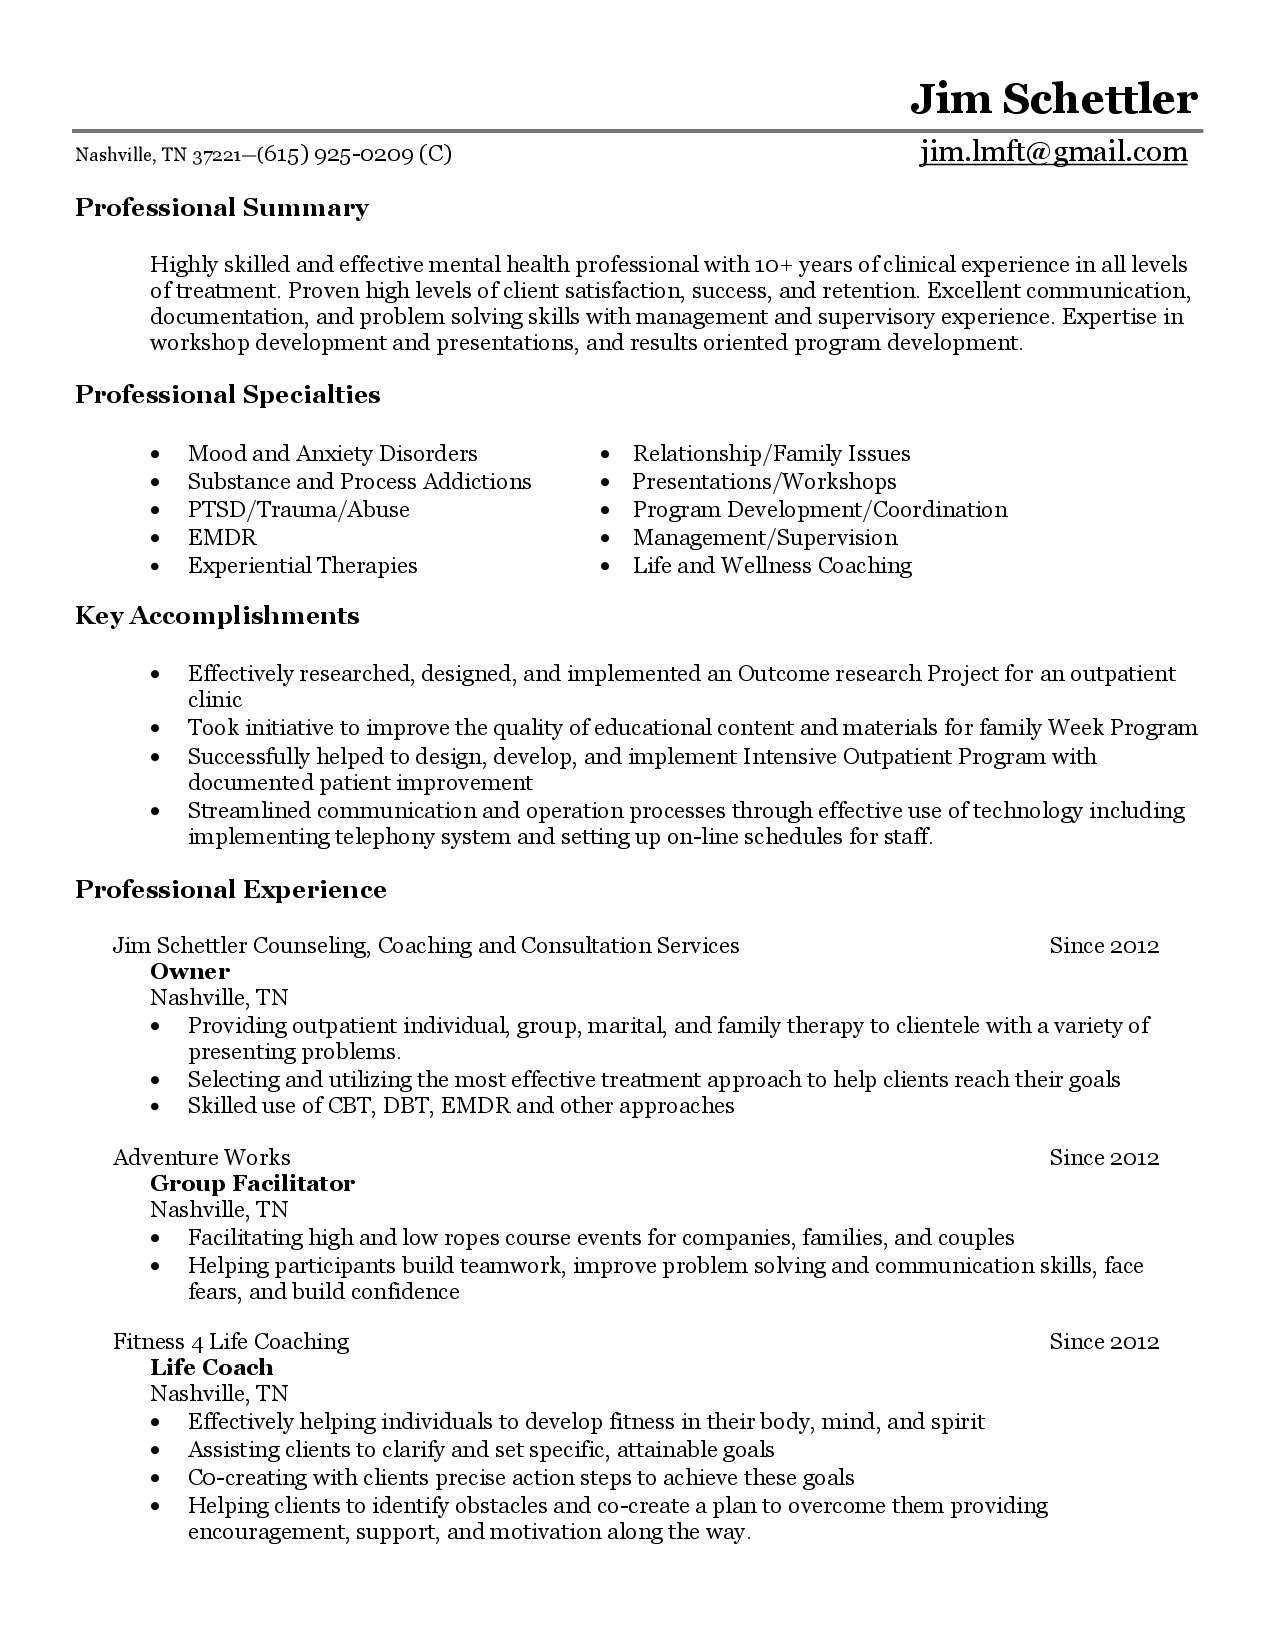 Behavioral Health Counselor Resume Sample | resumes | Pinterest